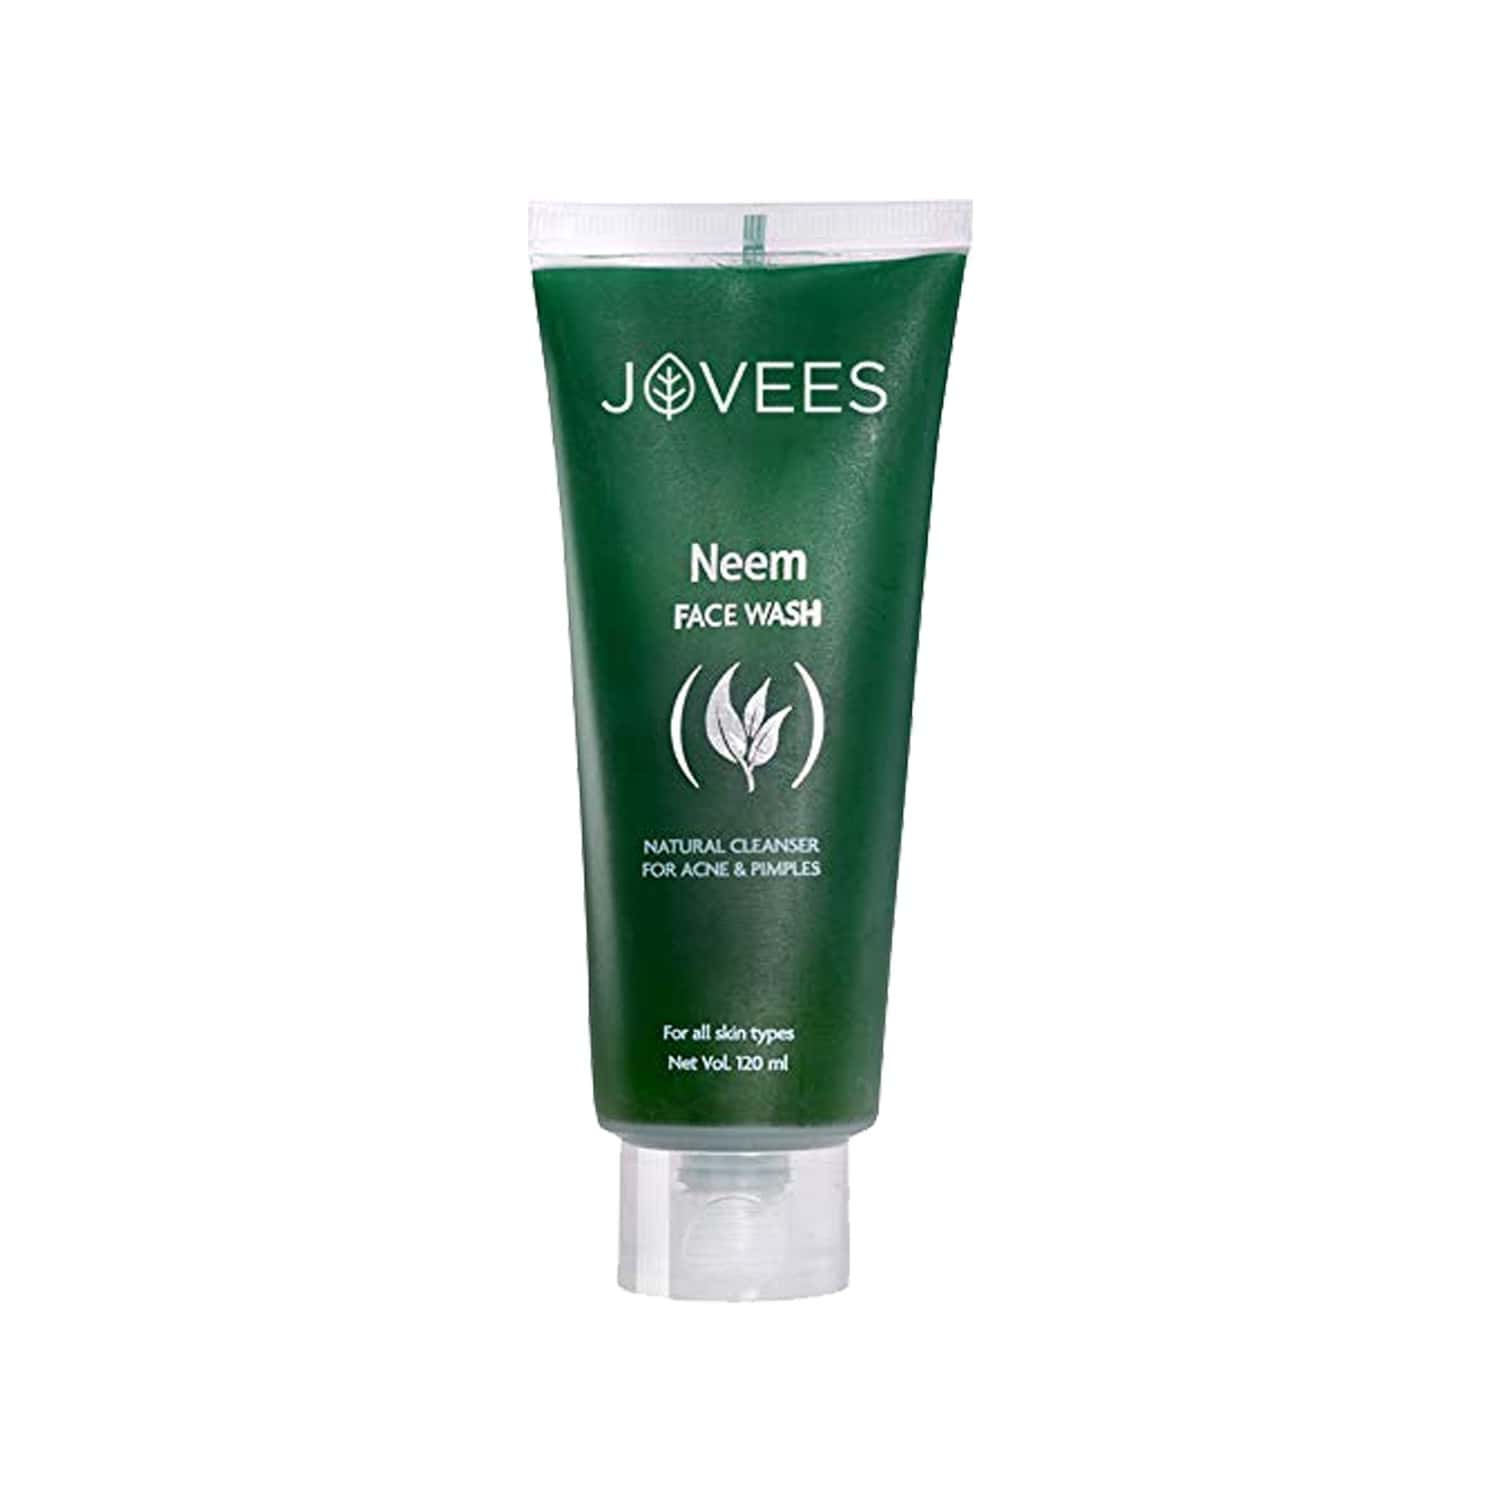 Jovees Neem Face Wash Natural Cleanser For Acne & Pimples - 120 Ml